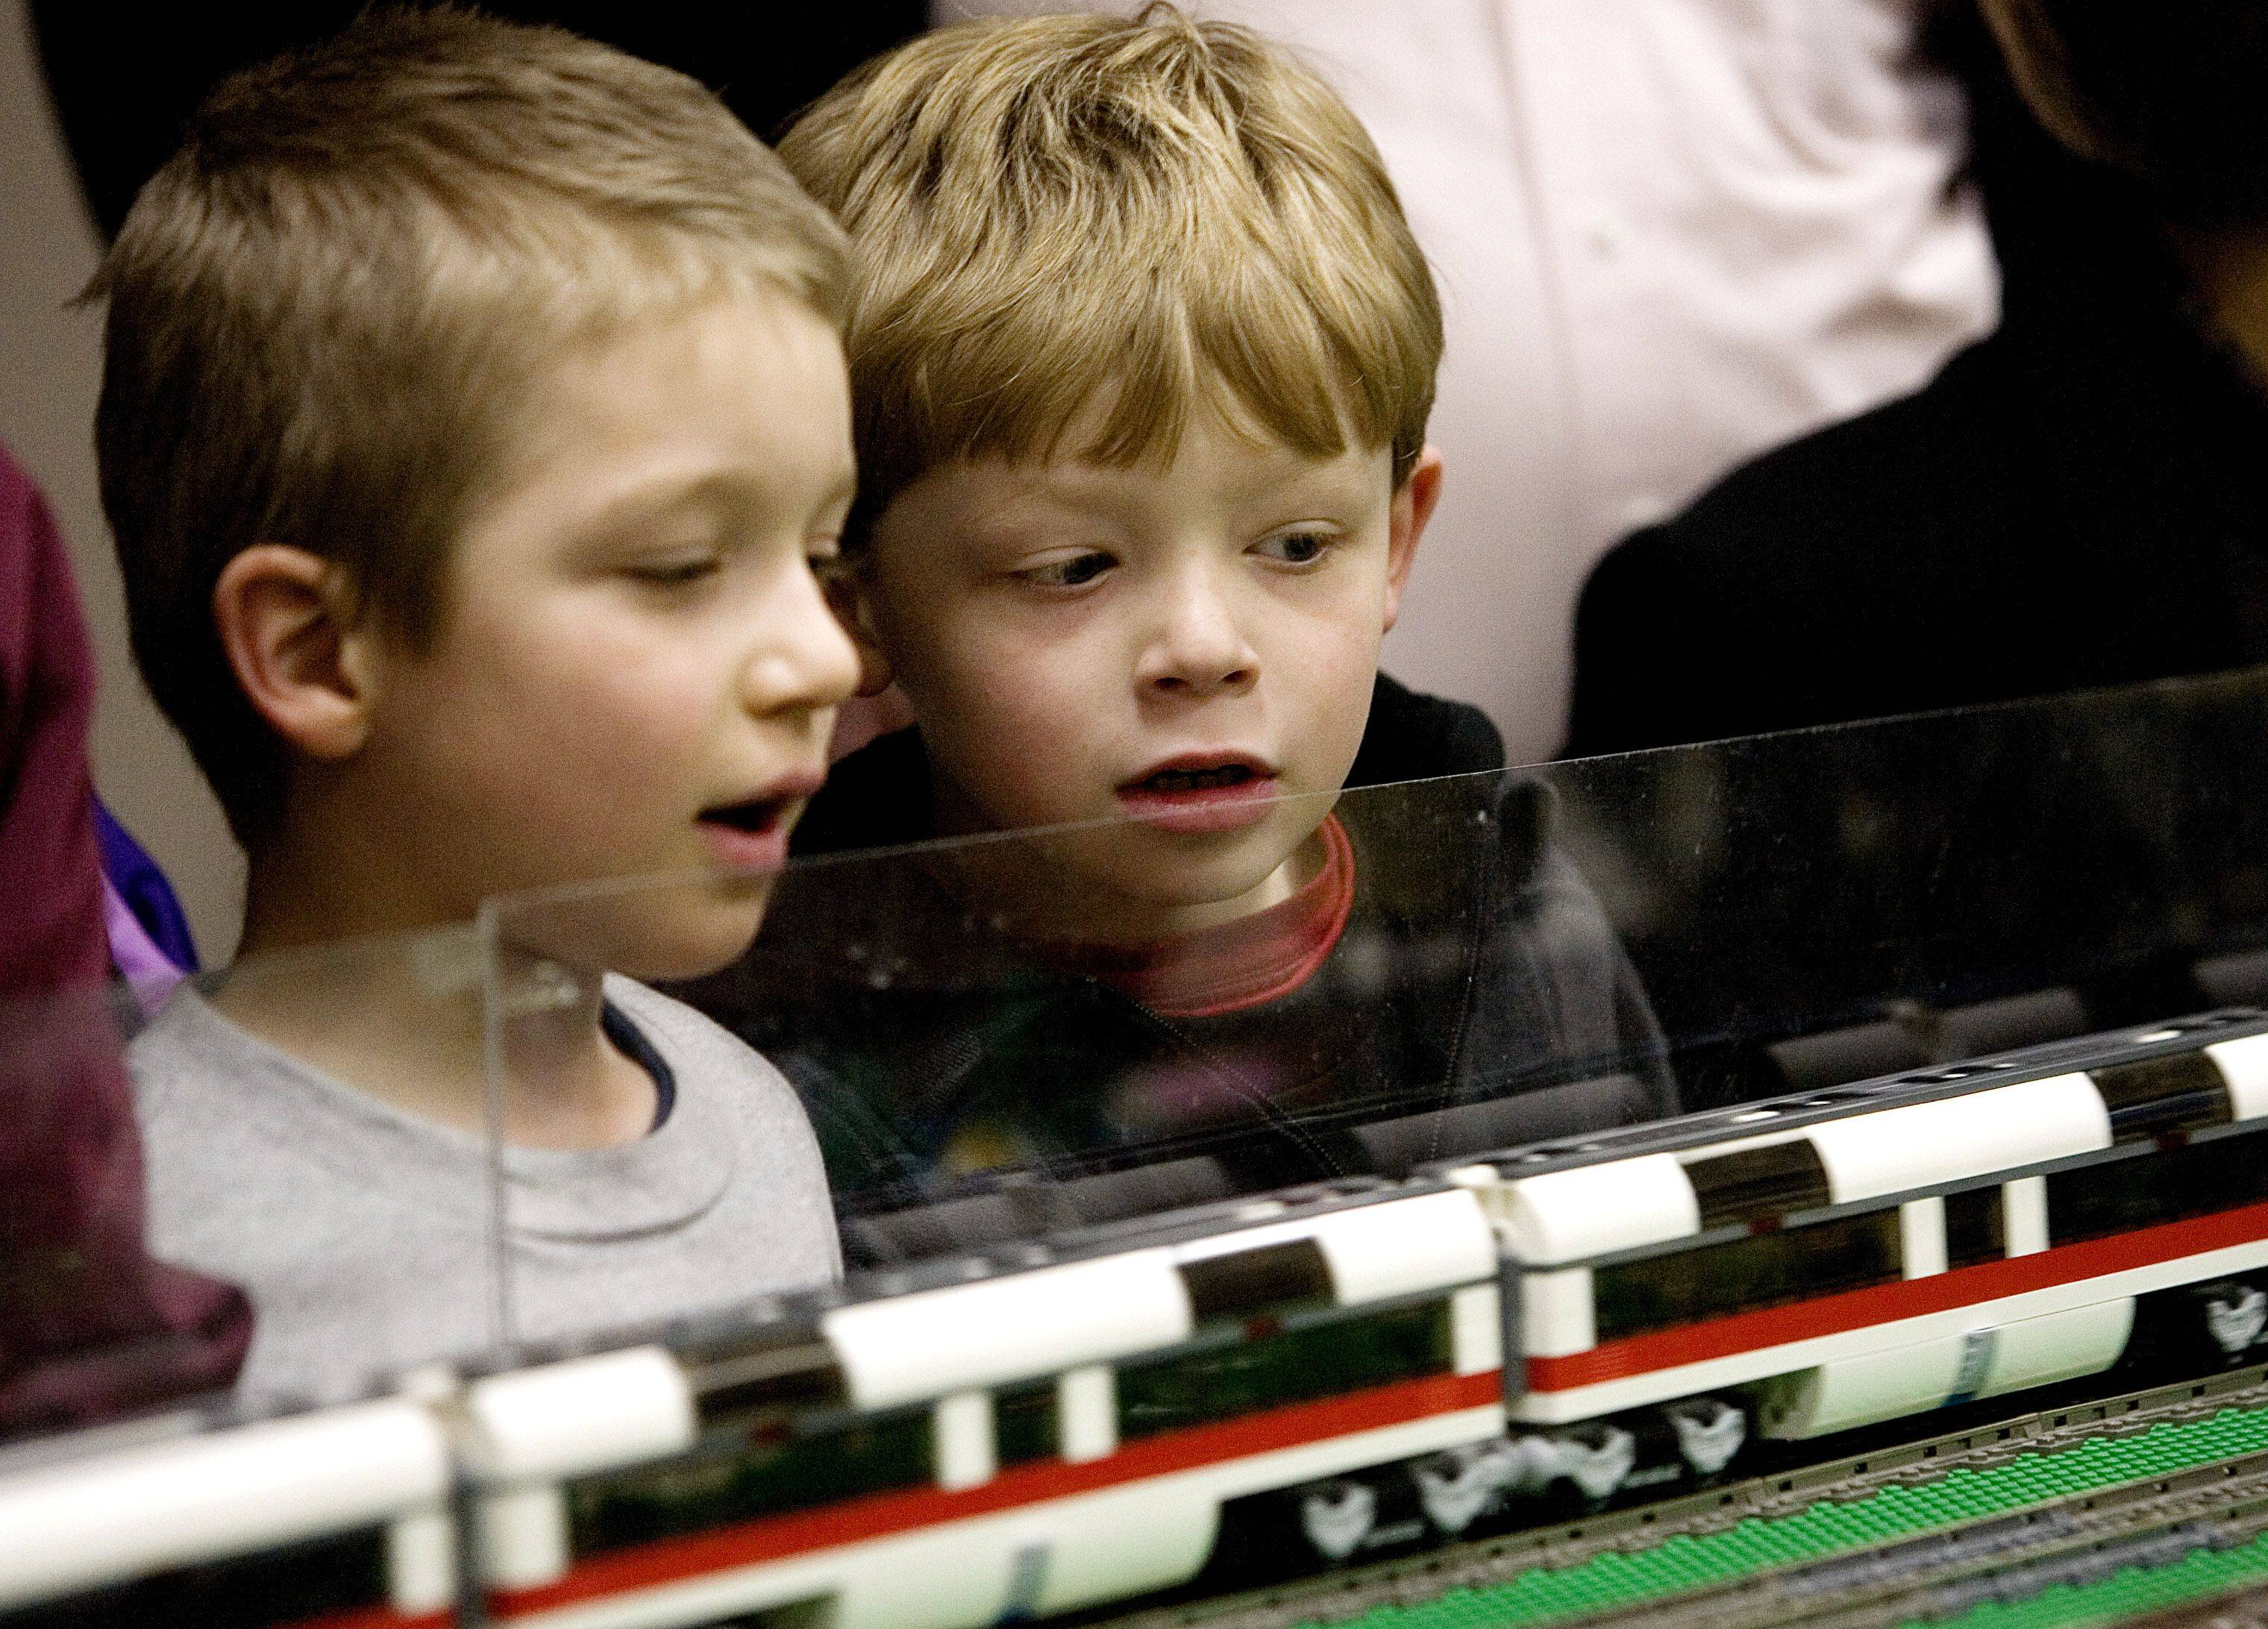 Drew Iversen,6, and Vince Vassolo,6, of Lombard check out The Northern Illinois Lego Train club's display at The Helen Plum Libraly Sunday in Lombard.